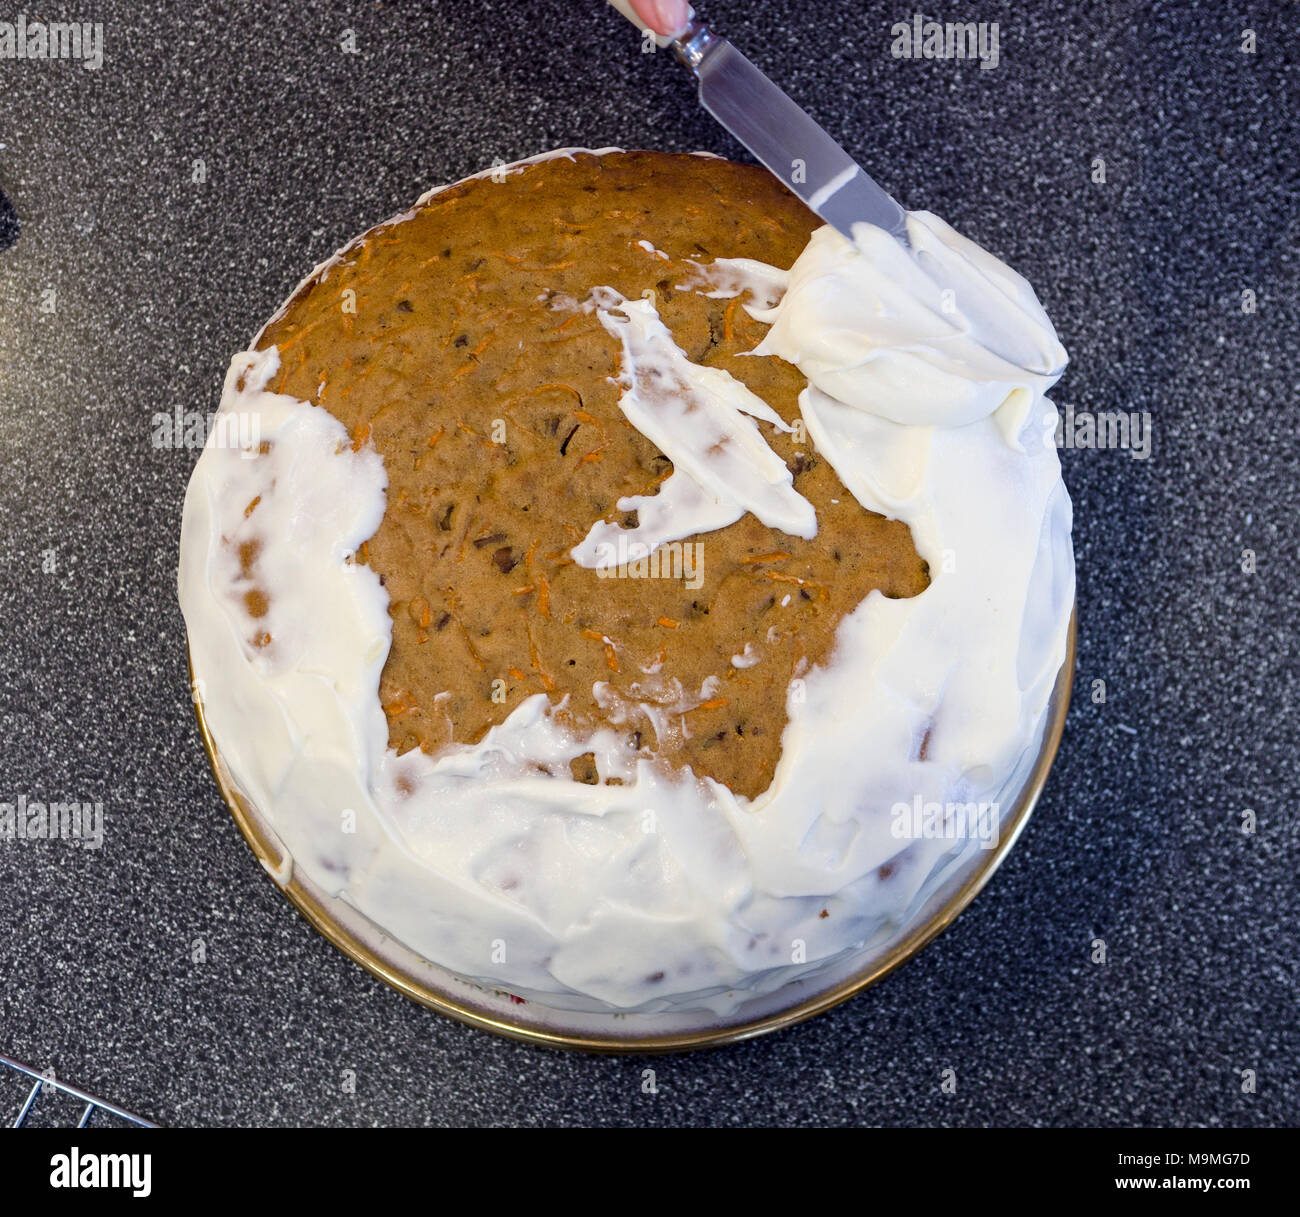 Icing A Carrot Cake: For Ruth's 90th Birthday pre-party. - Stock Image